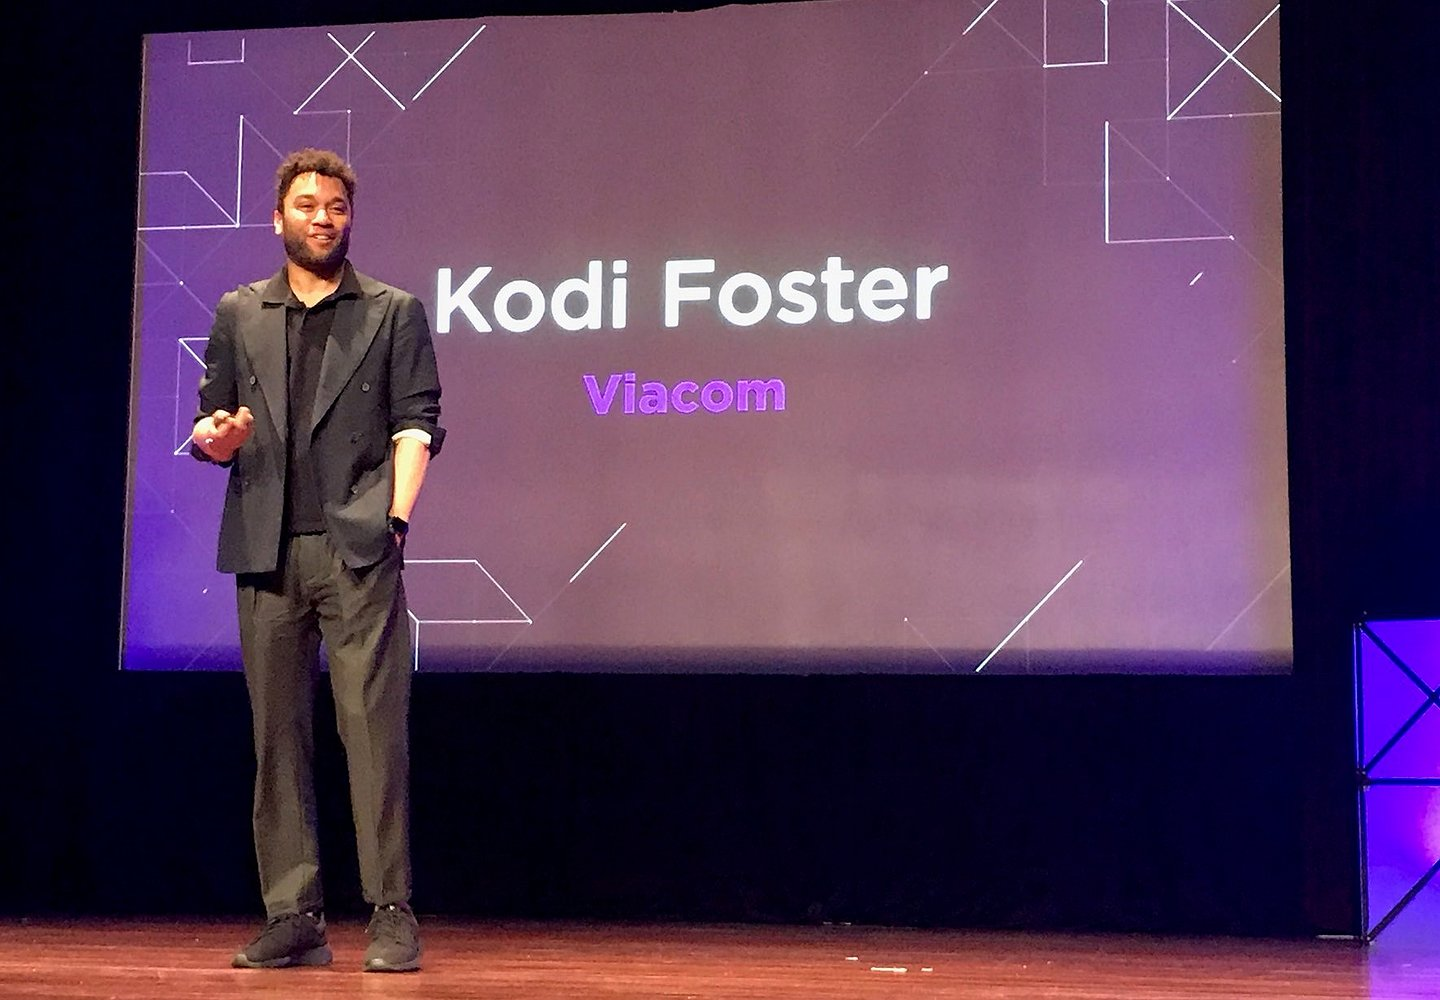 Viacom's Kodi Foster Warns of Living in a Data Echo Chamber